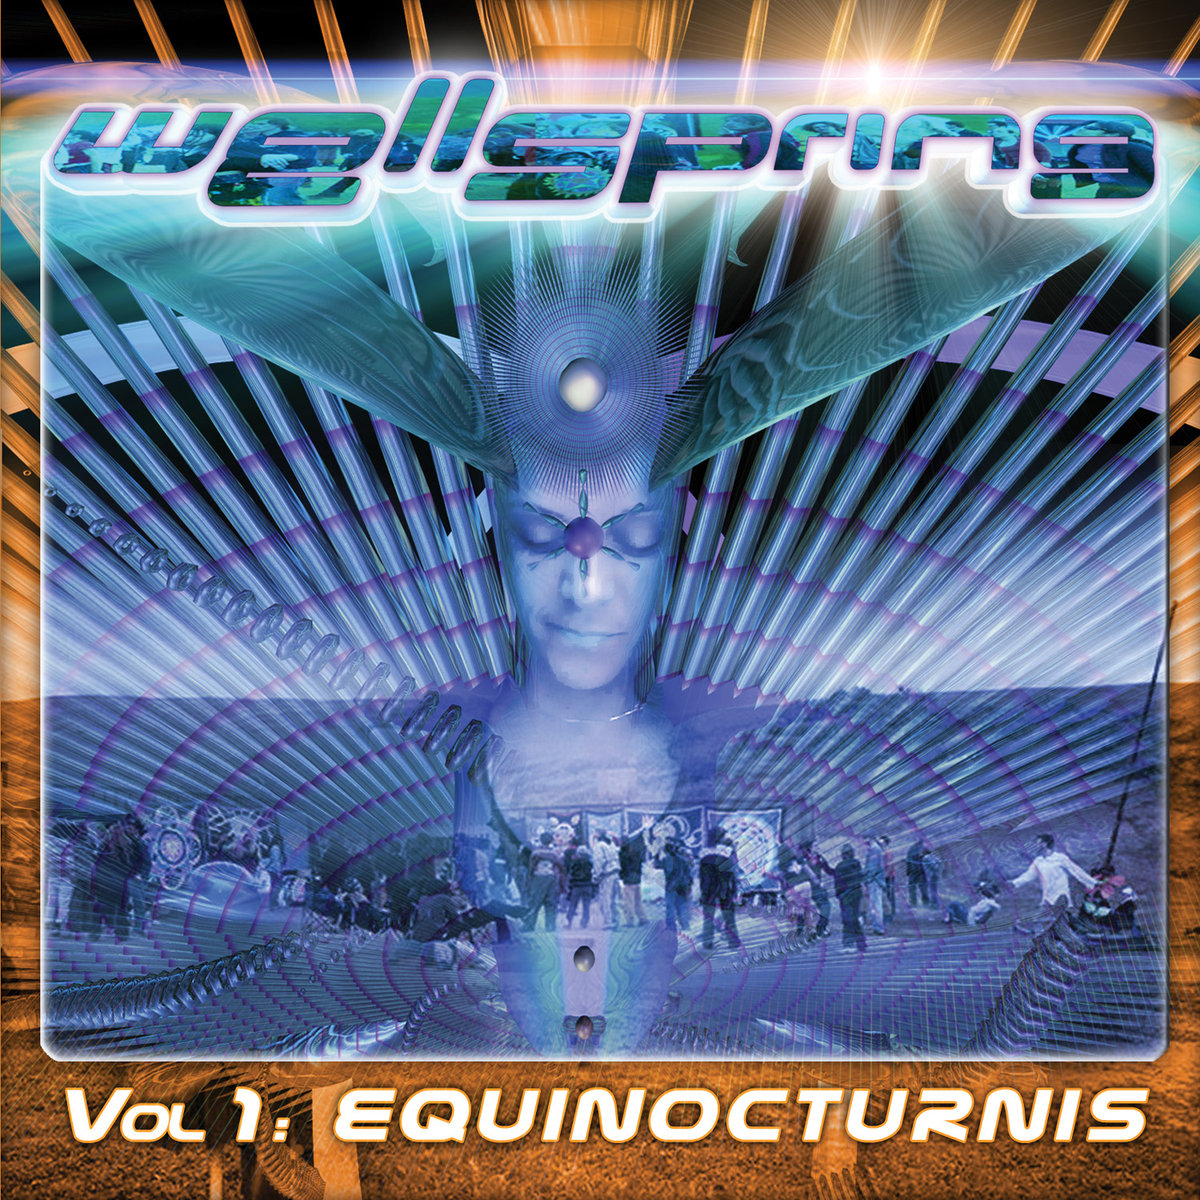 Penta - Blue Xmas @ 'Various Artists - Wellspring Vol. 1: Equinocturnis' album (electronic, goa)